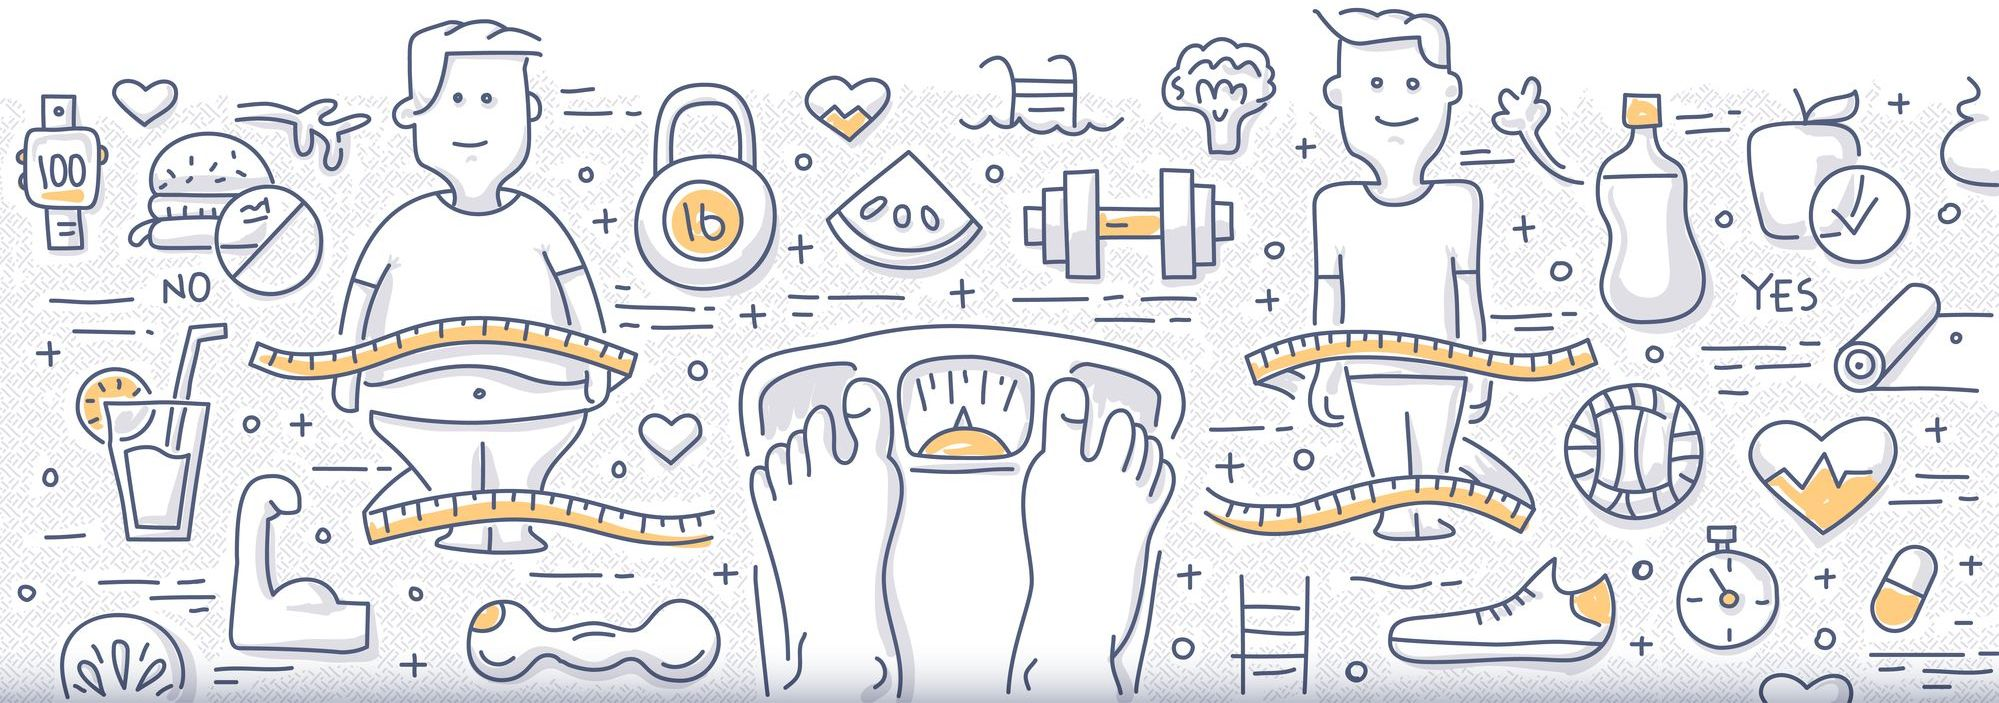 Doodle design style concept of getting healthy, controlling body mass weight, dieting and fitness. Modern line style illustration for web banners, hero images, printed materials